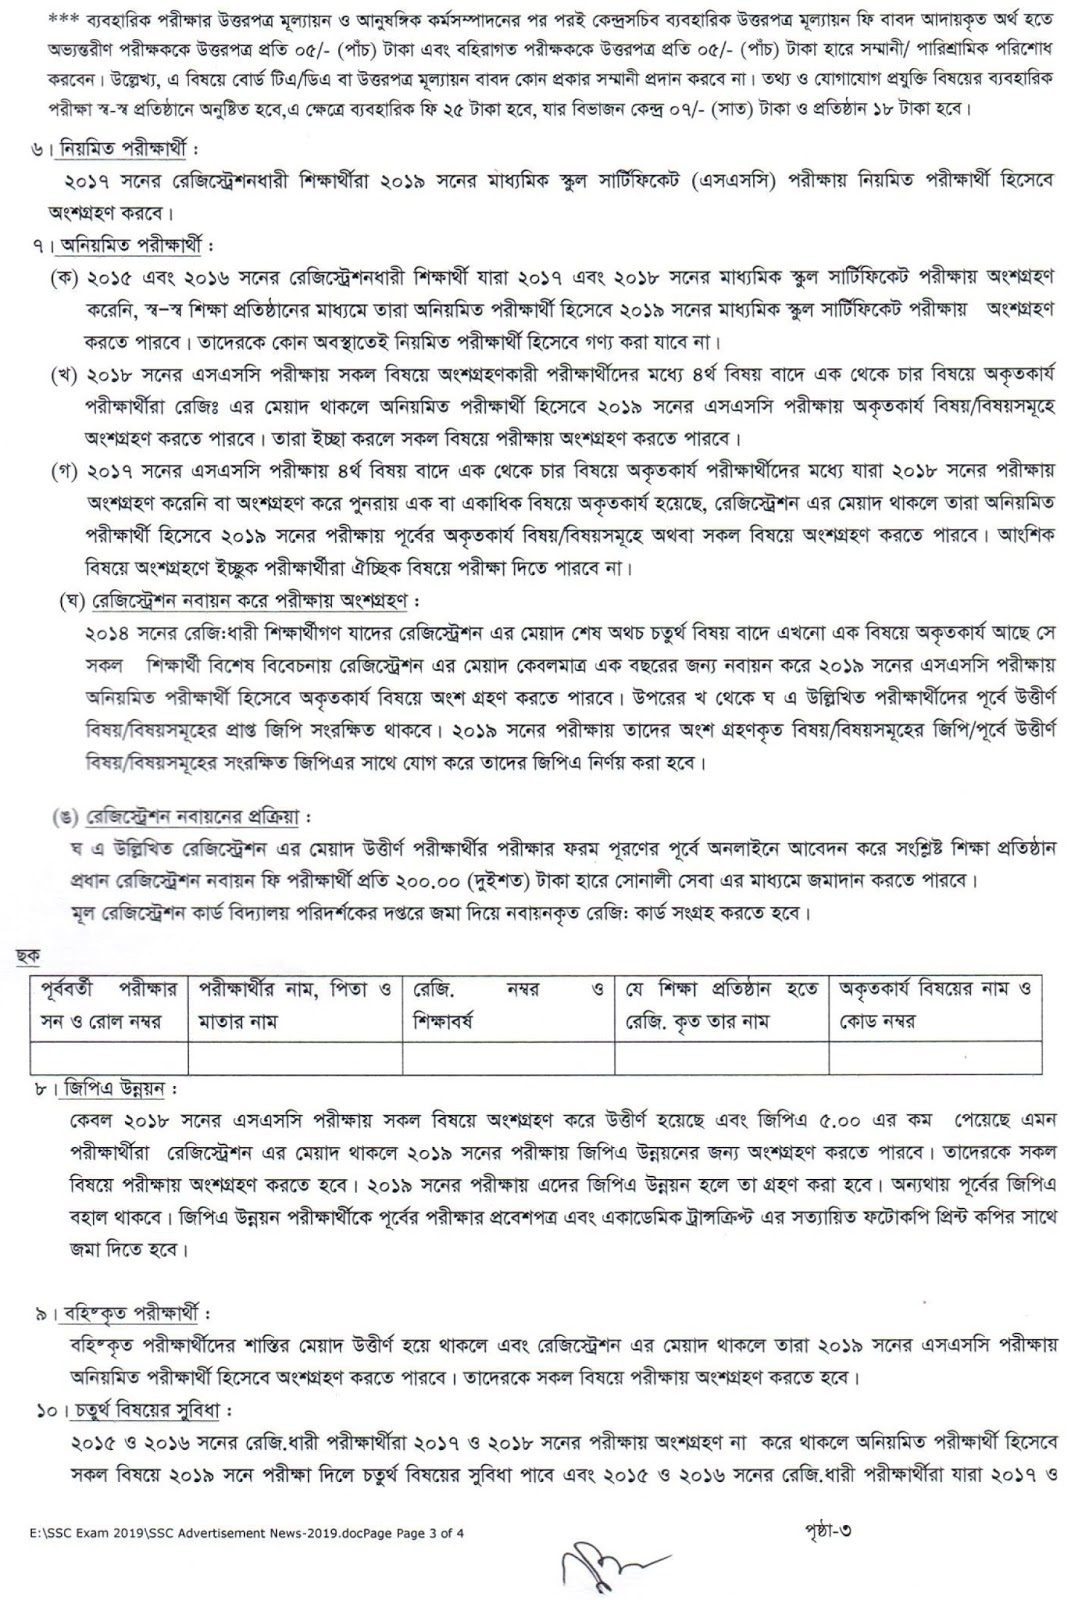 Dhaka Board SSC Exam 2019 Online Form Fill-Up Notice 2018